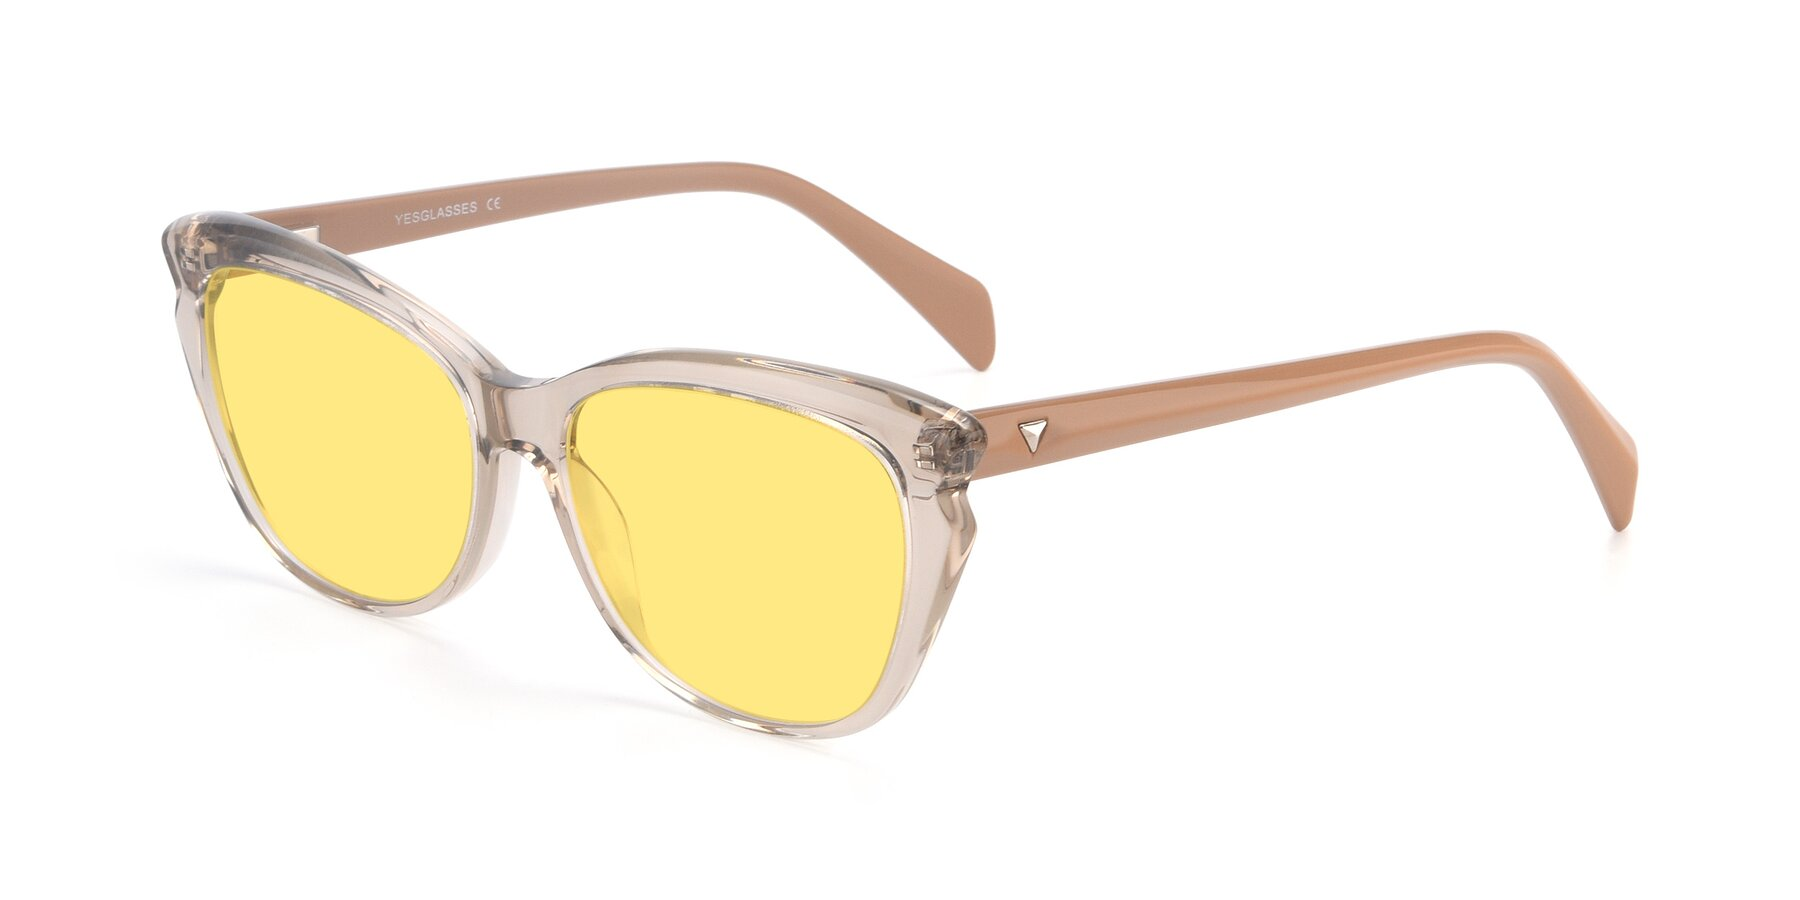 Angle of 17629 in Transparent Brown with Medium Yellow Tinted Lenses